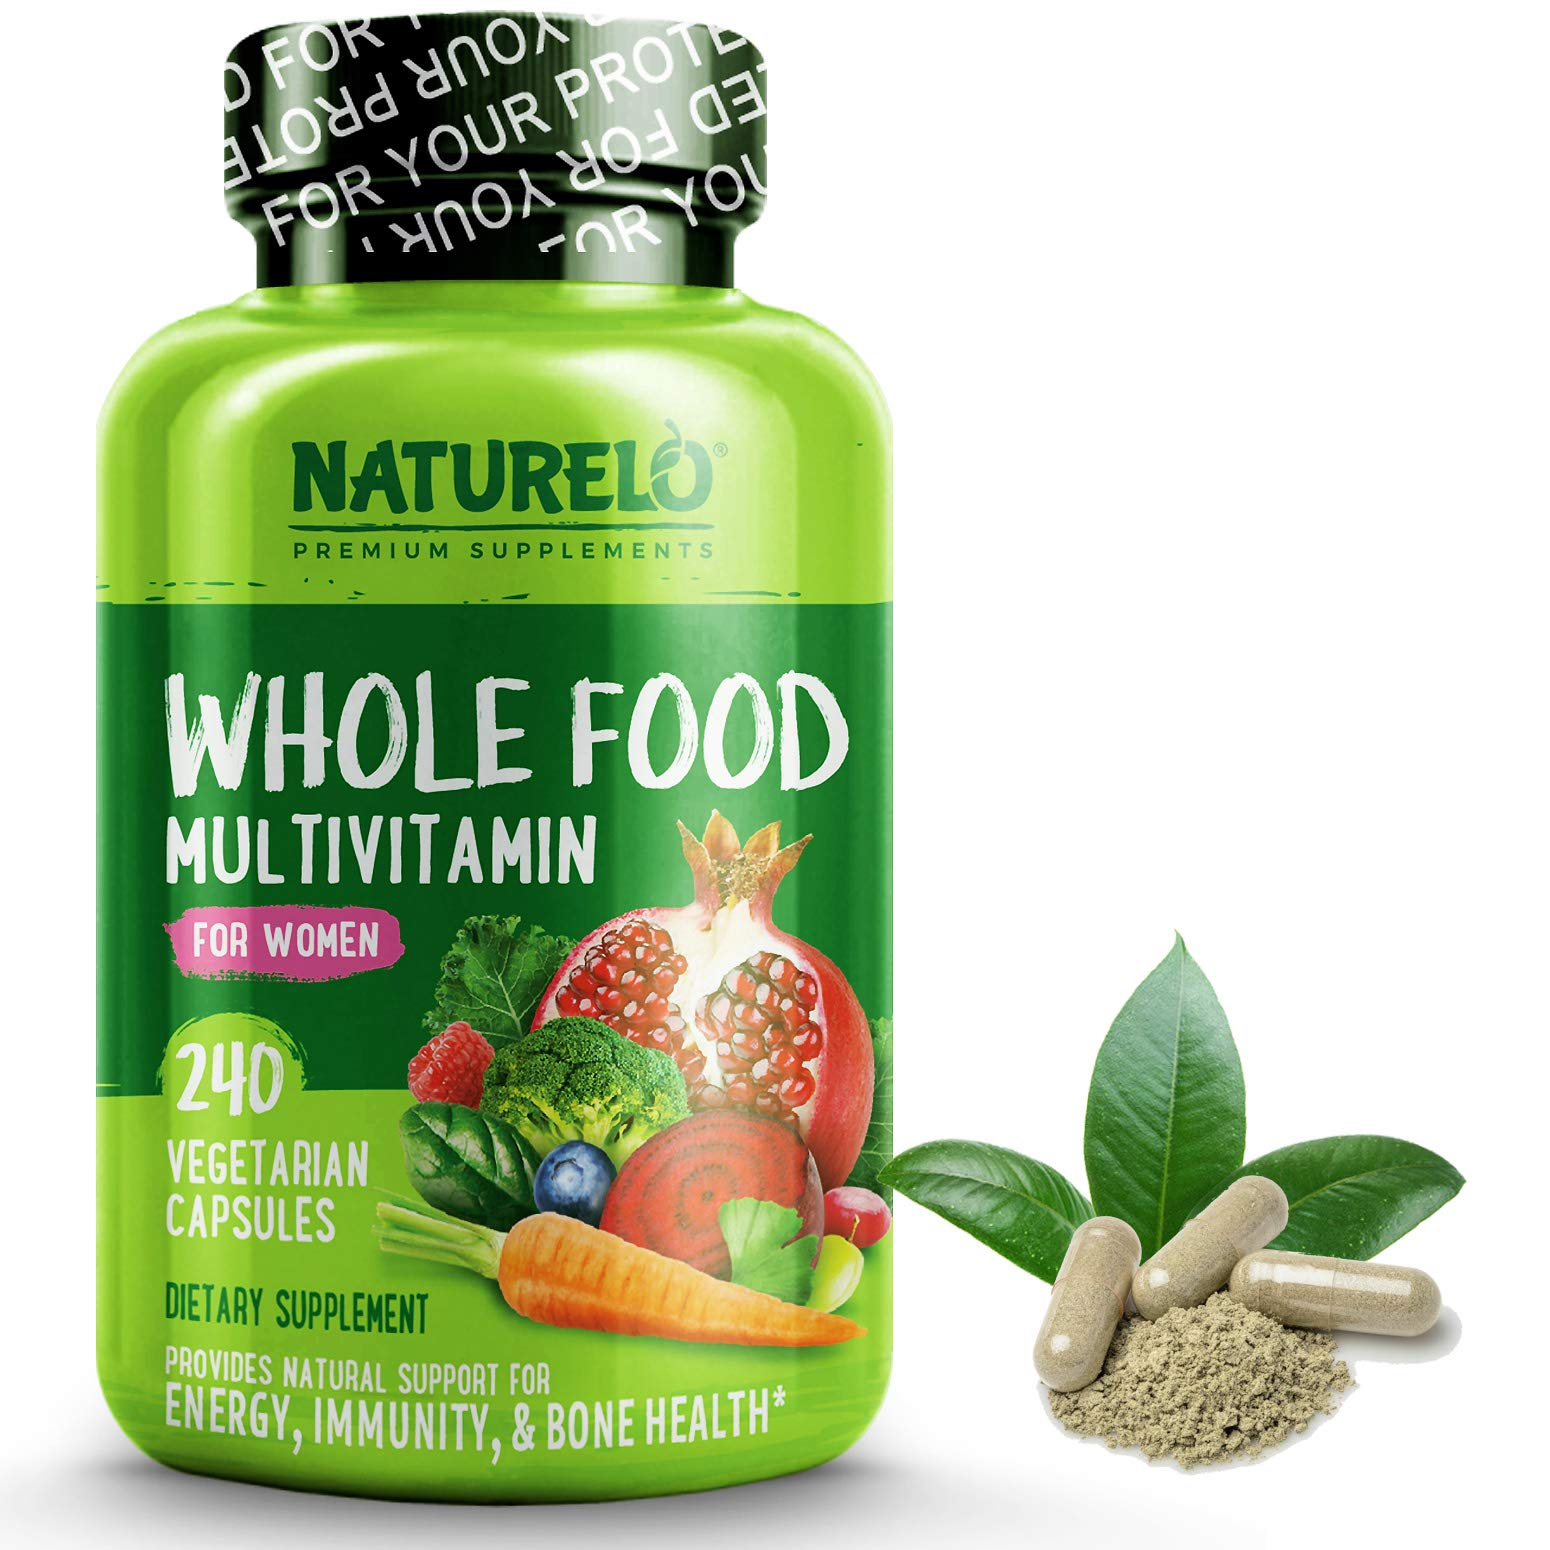 NATURELO Whole Food Multivitamin for Women - Natural Vitamins, Minerals, Raw Organic Extracts - Best Supplement for Energy and Heart Health - Non GMO - 120 Vegan Capsules